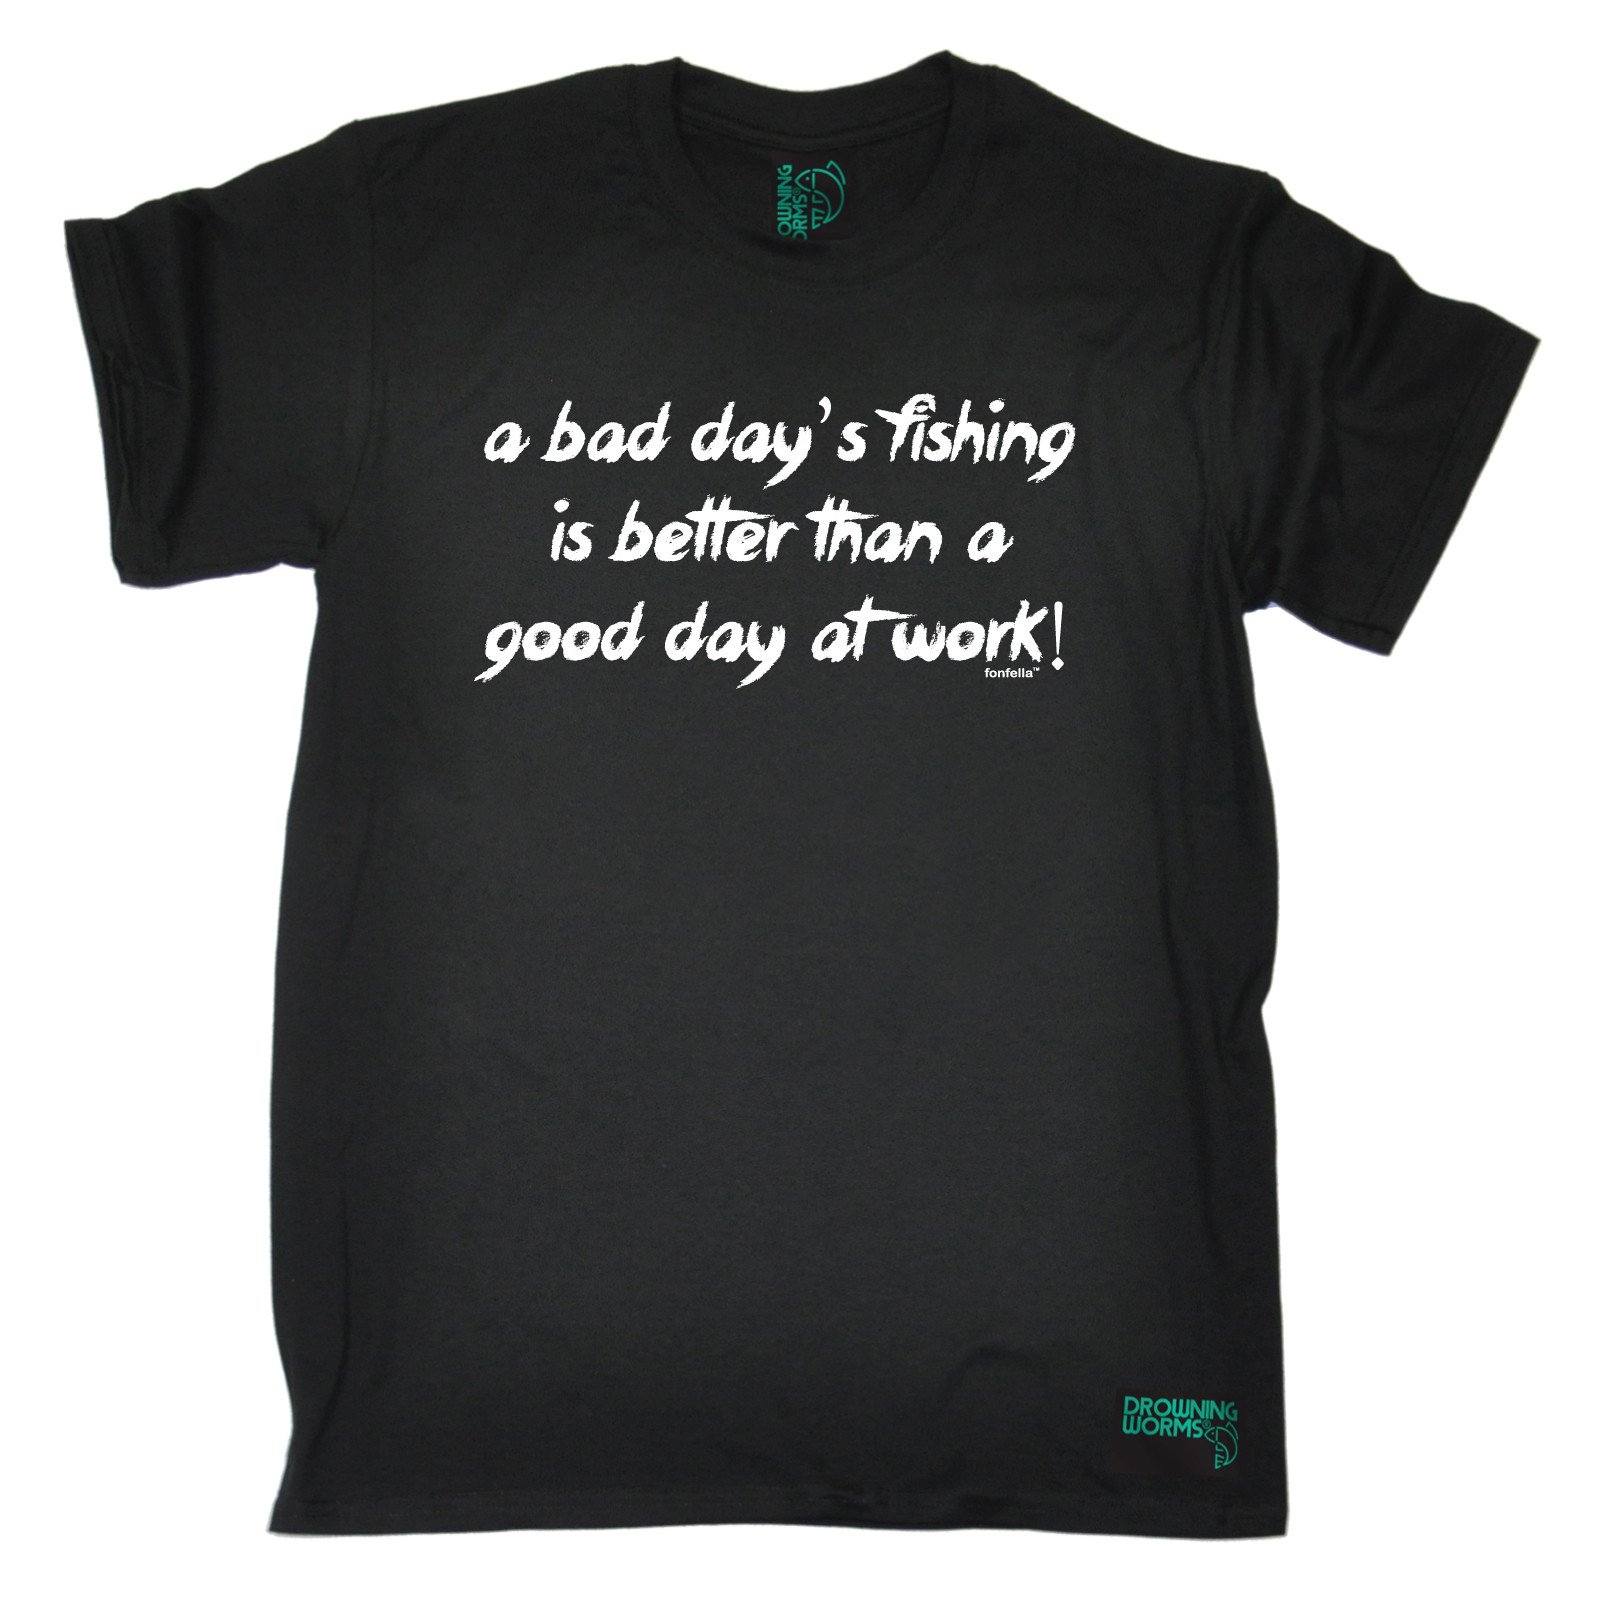 A Bad Days Fishinged Better Than Good Day At Work T-SHIRT Tee Gift birthday funny